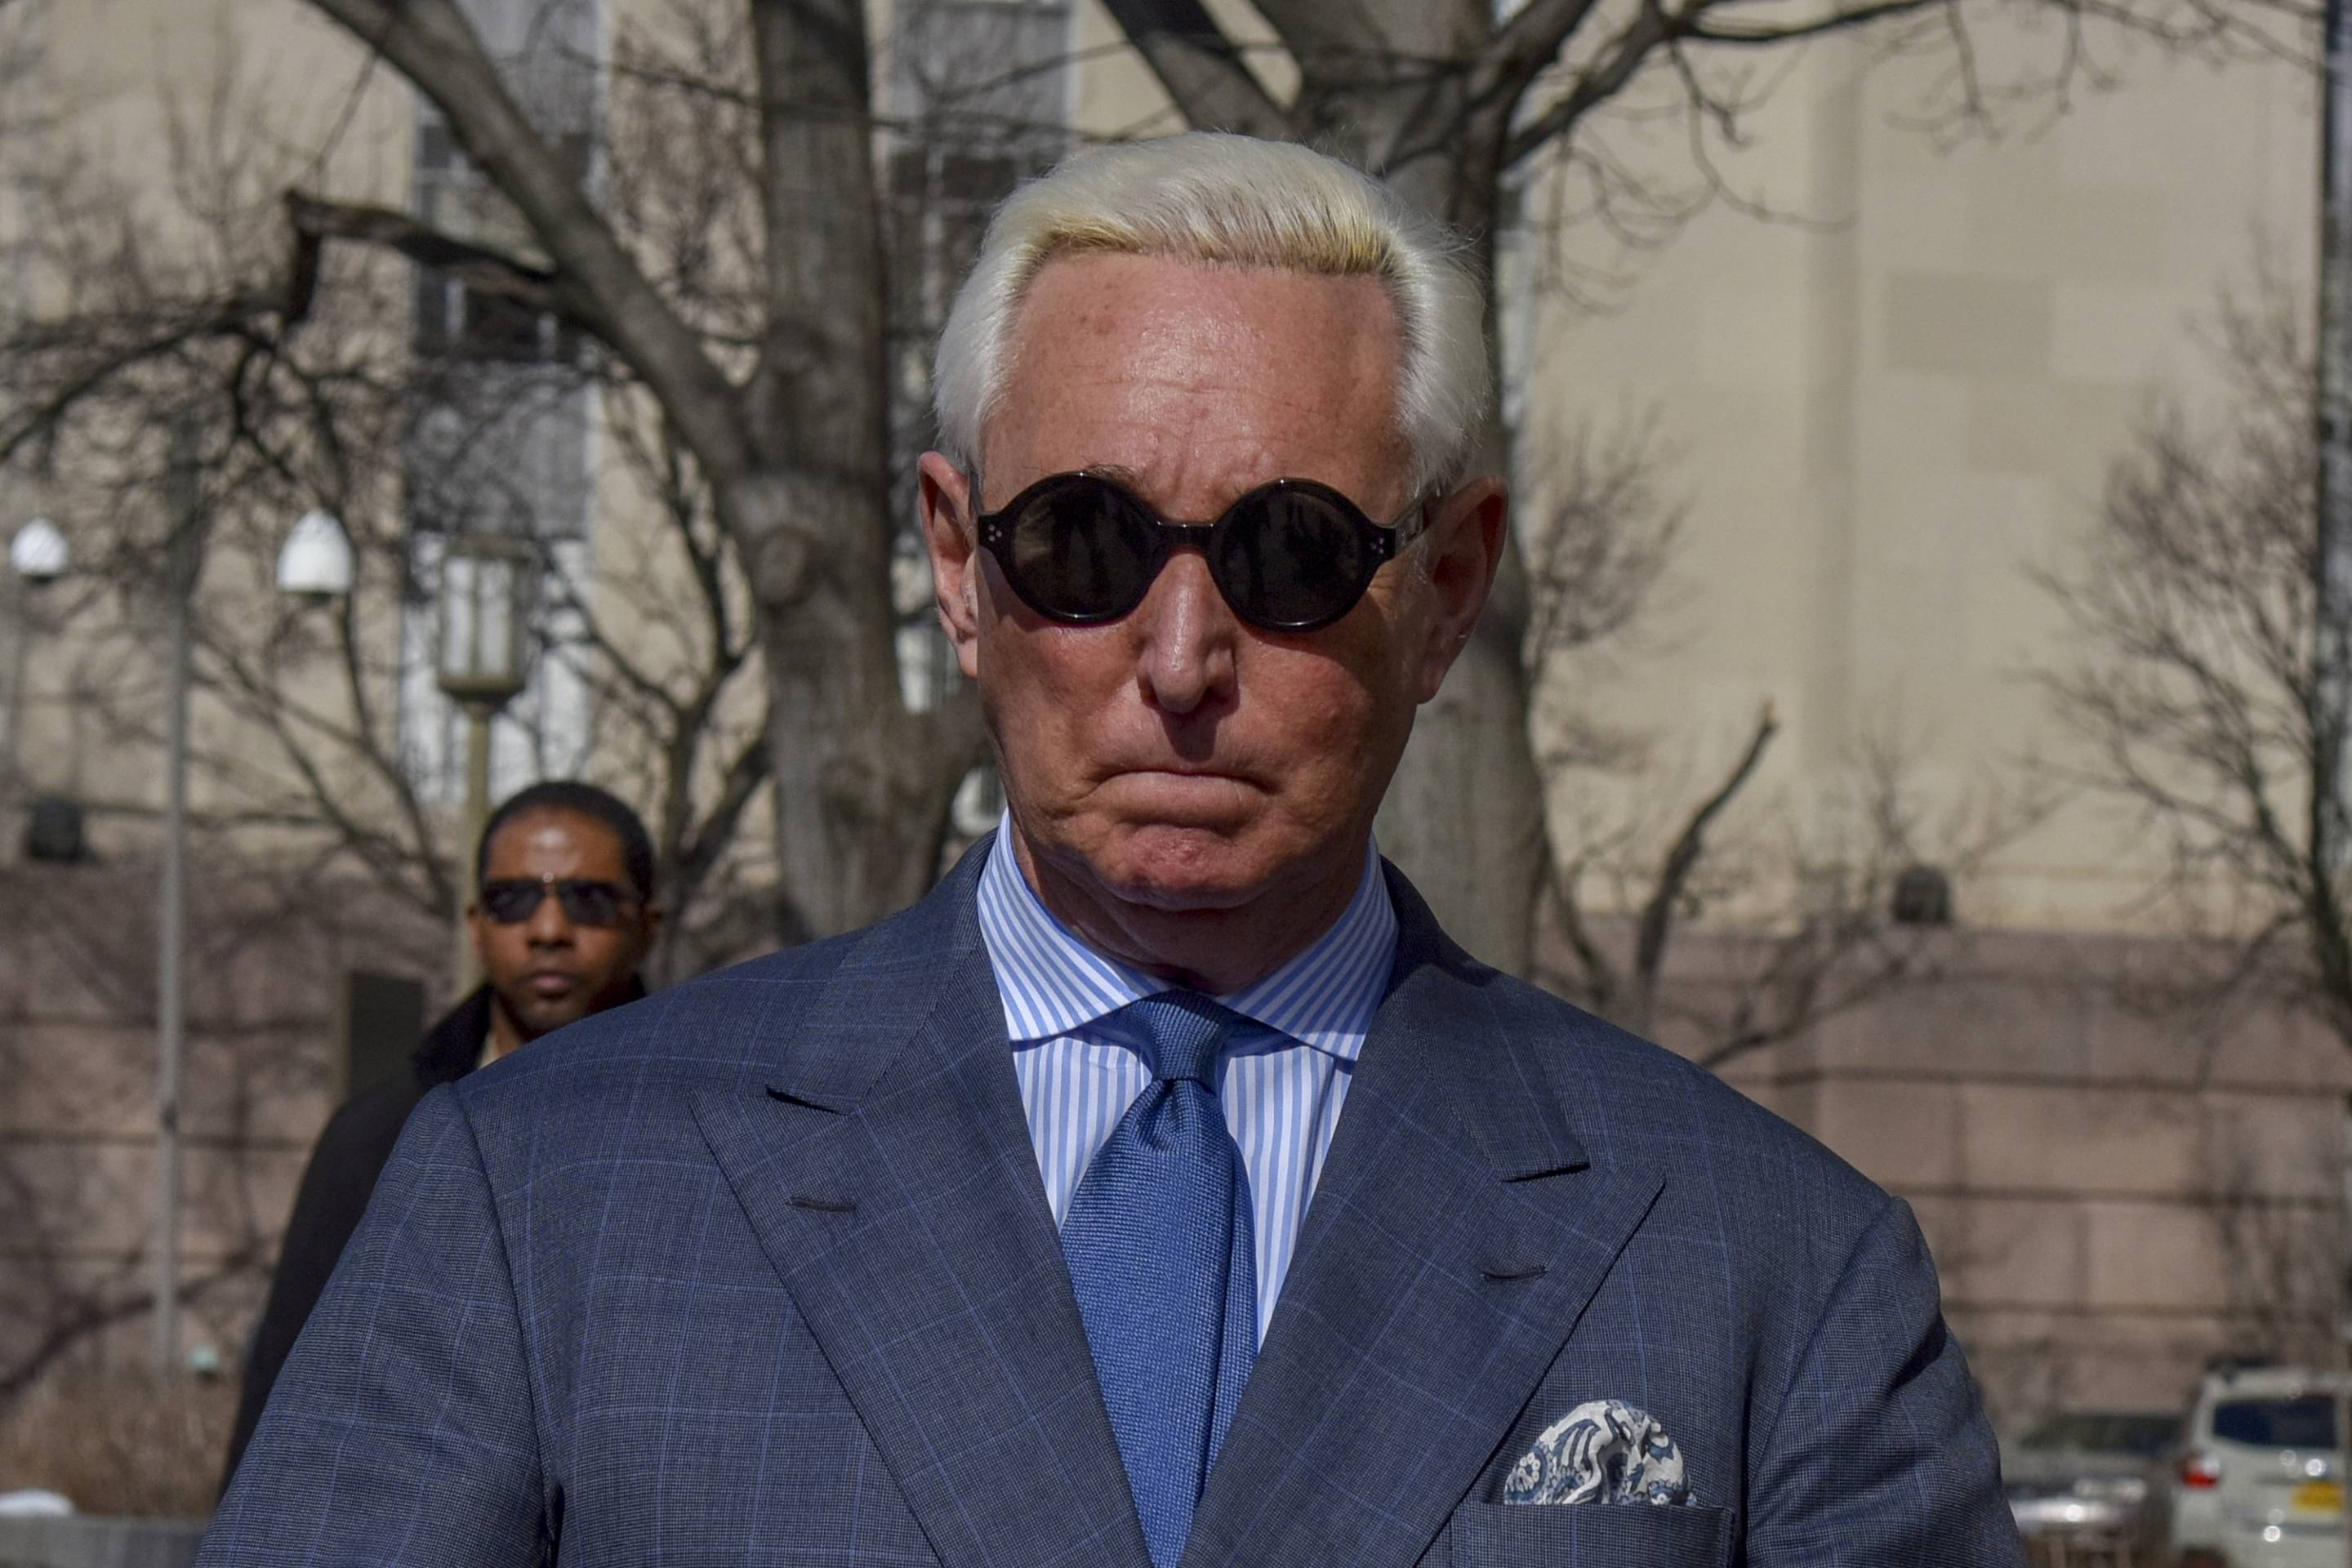 Former Trump Adviser Roger Stone Makes an Appearance for Posting Picture of Judge on Instagram